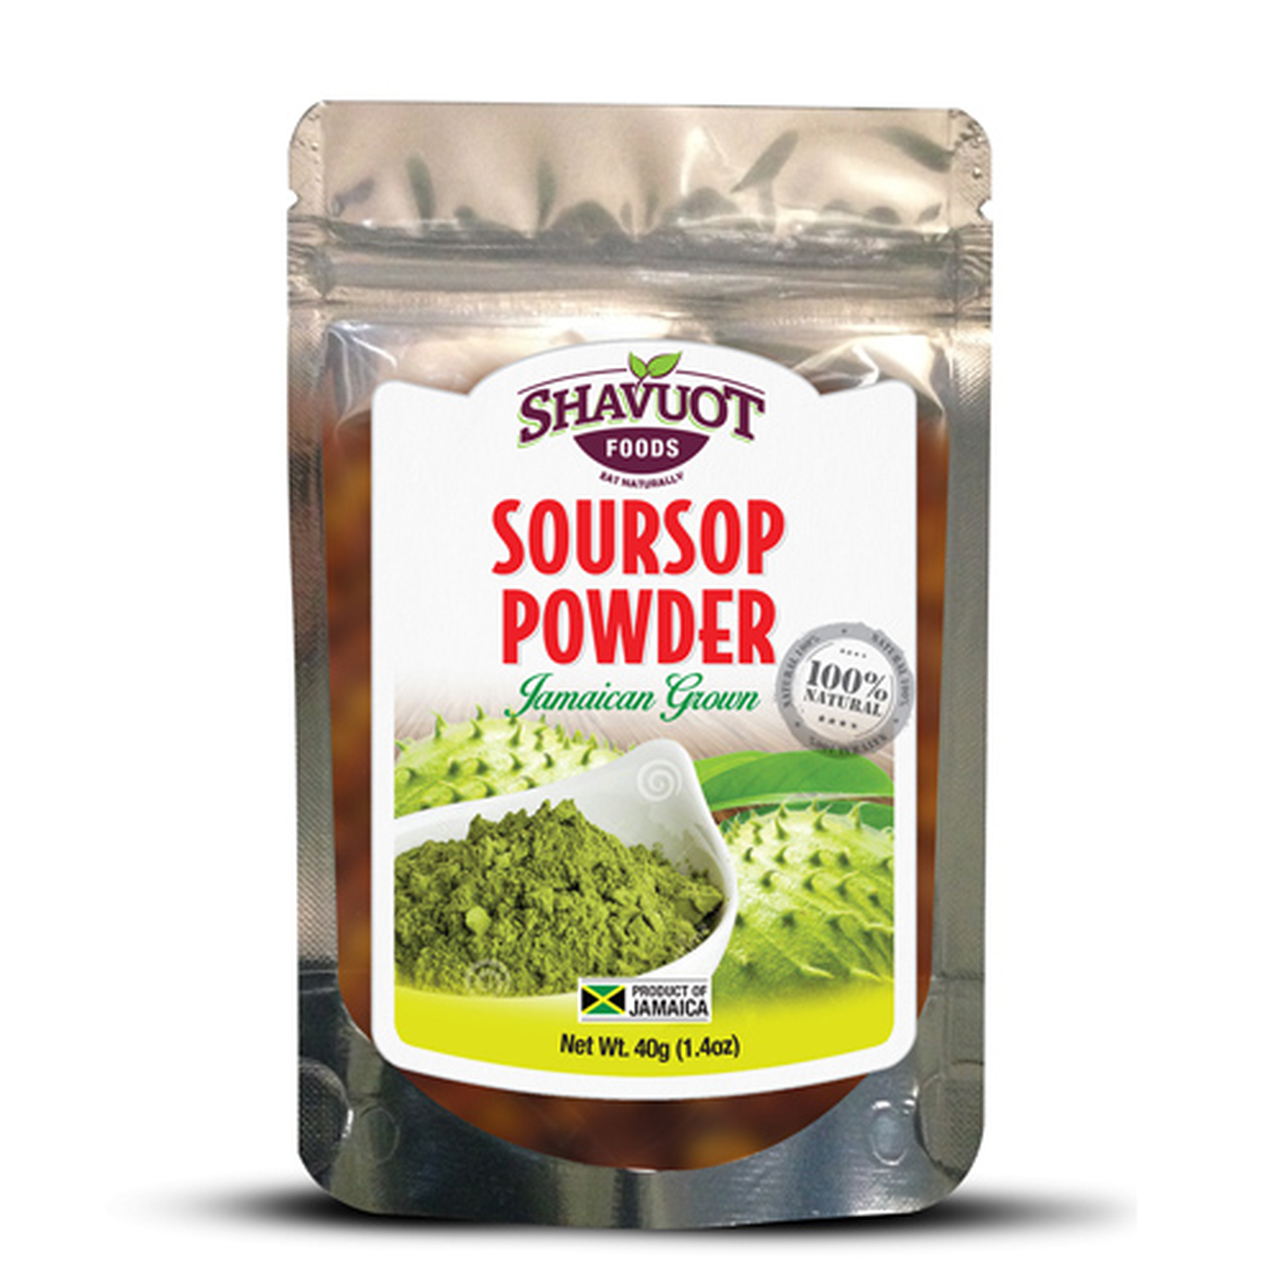 Shavuot-Jamaican-Soursop-Powder-1